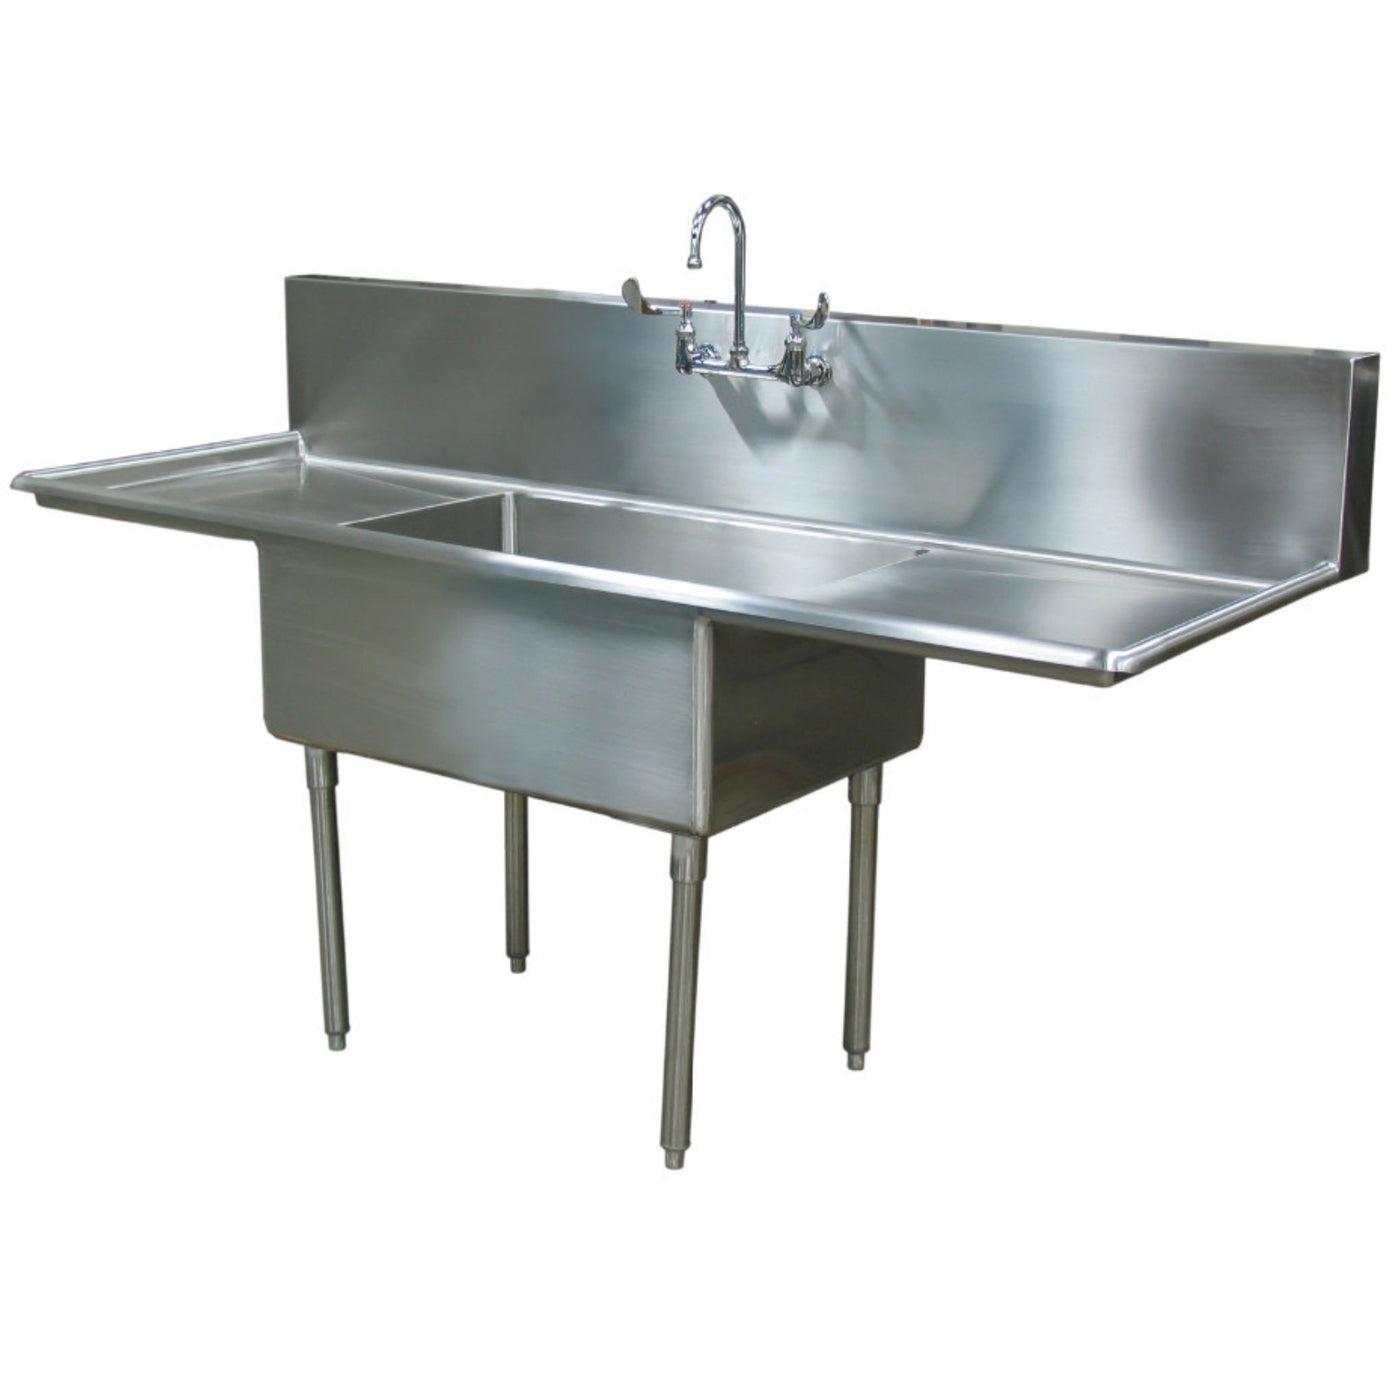 Scullery Sink (Dual Drain Board)-Sink Station-Mortech Manufacturing Company Inc. Quality Stainless Steel Autopsy, Morgue, Funeral Home, Necropsy, Veterinary / Anatomy, Dissection Equipment and Accessories